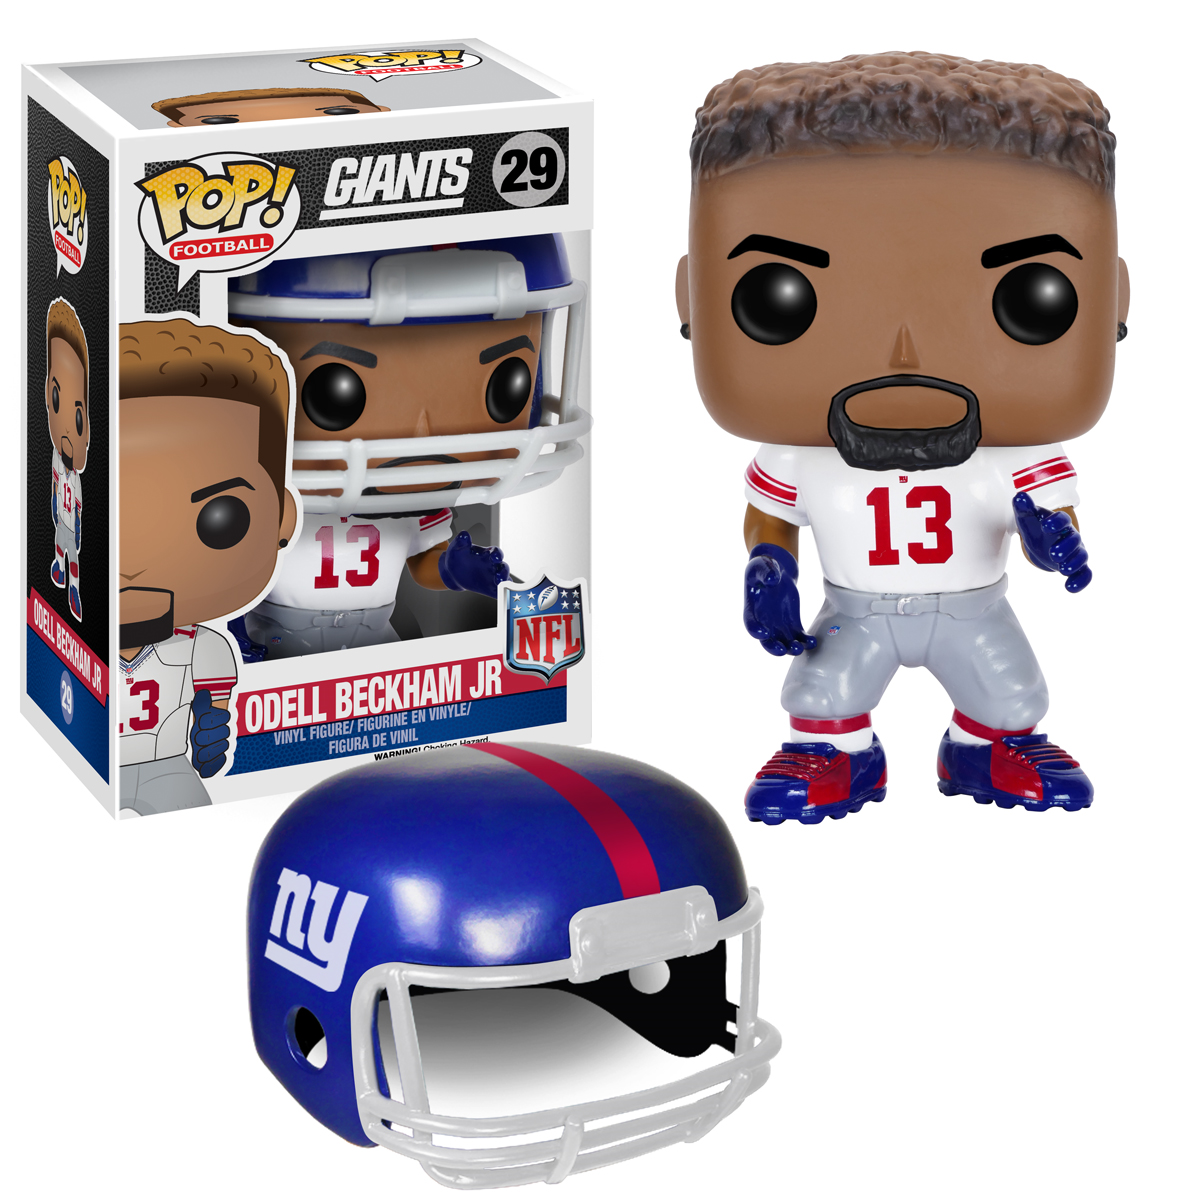 Odell Beckham Jr. New York Giants NFL Funko Pop! Series 2  eBay